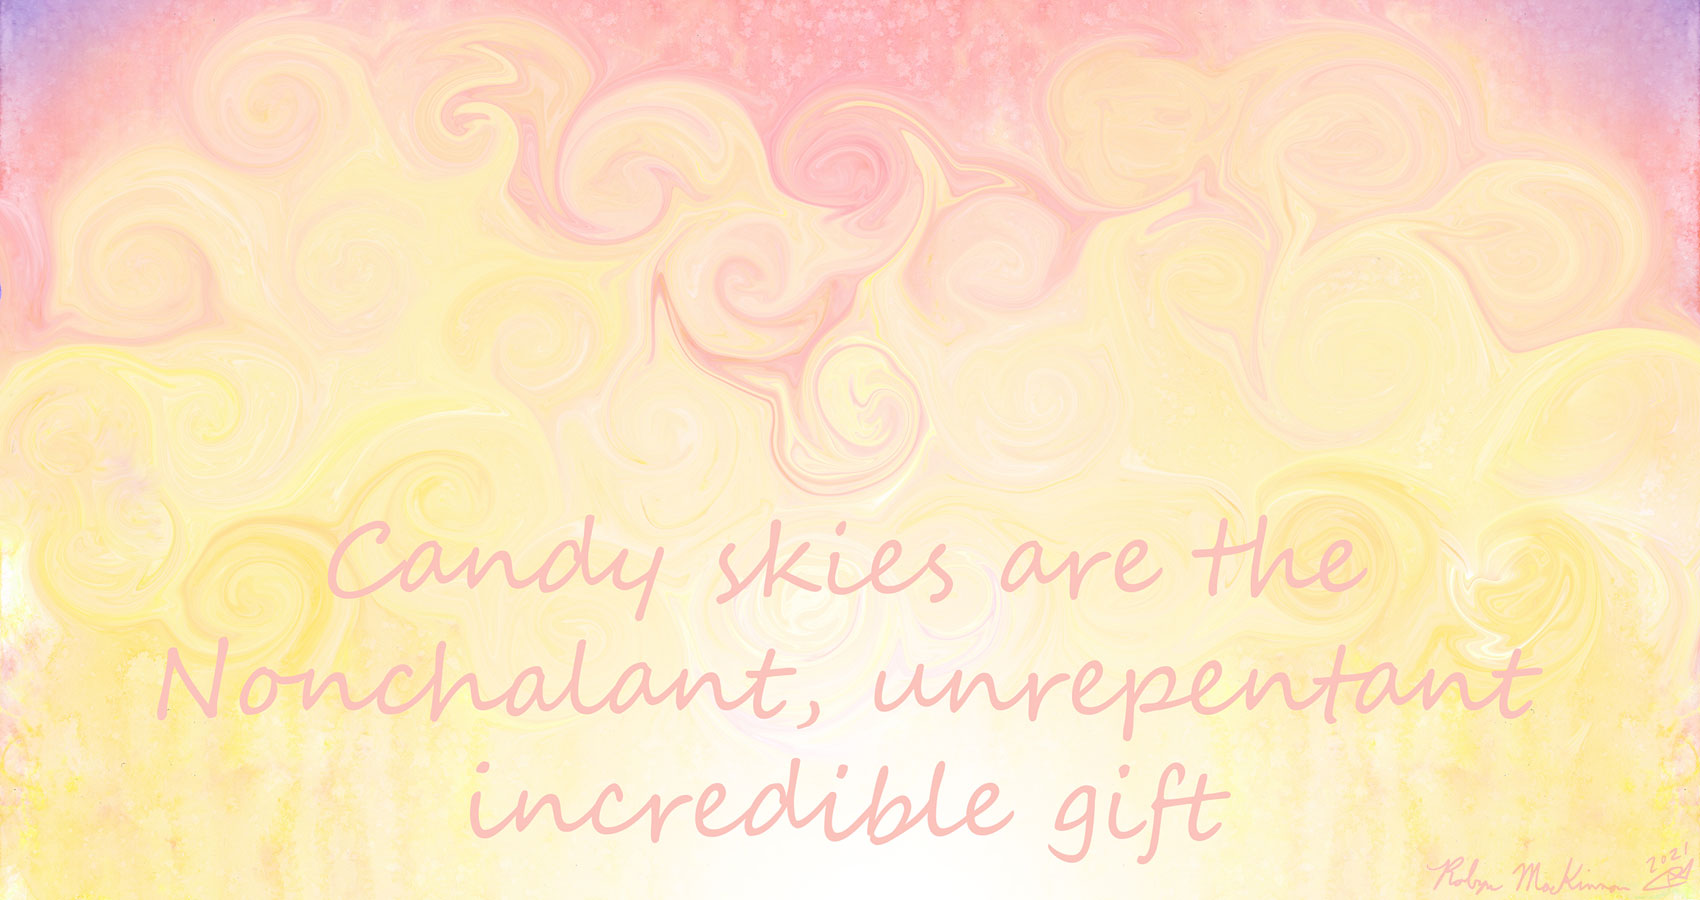 Candy Skies, a haiku by Robyn MacKinnon at Spillwords.com